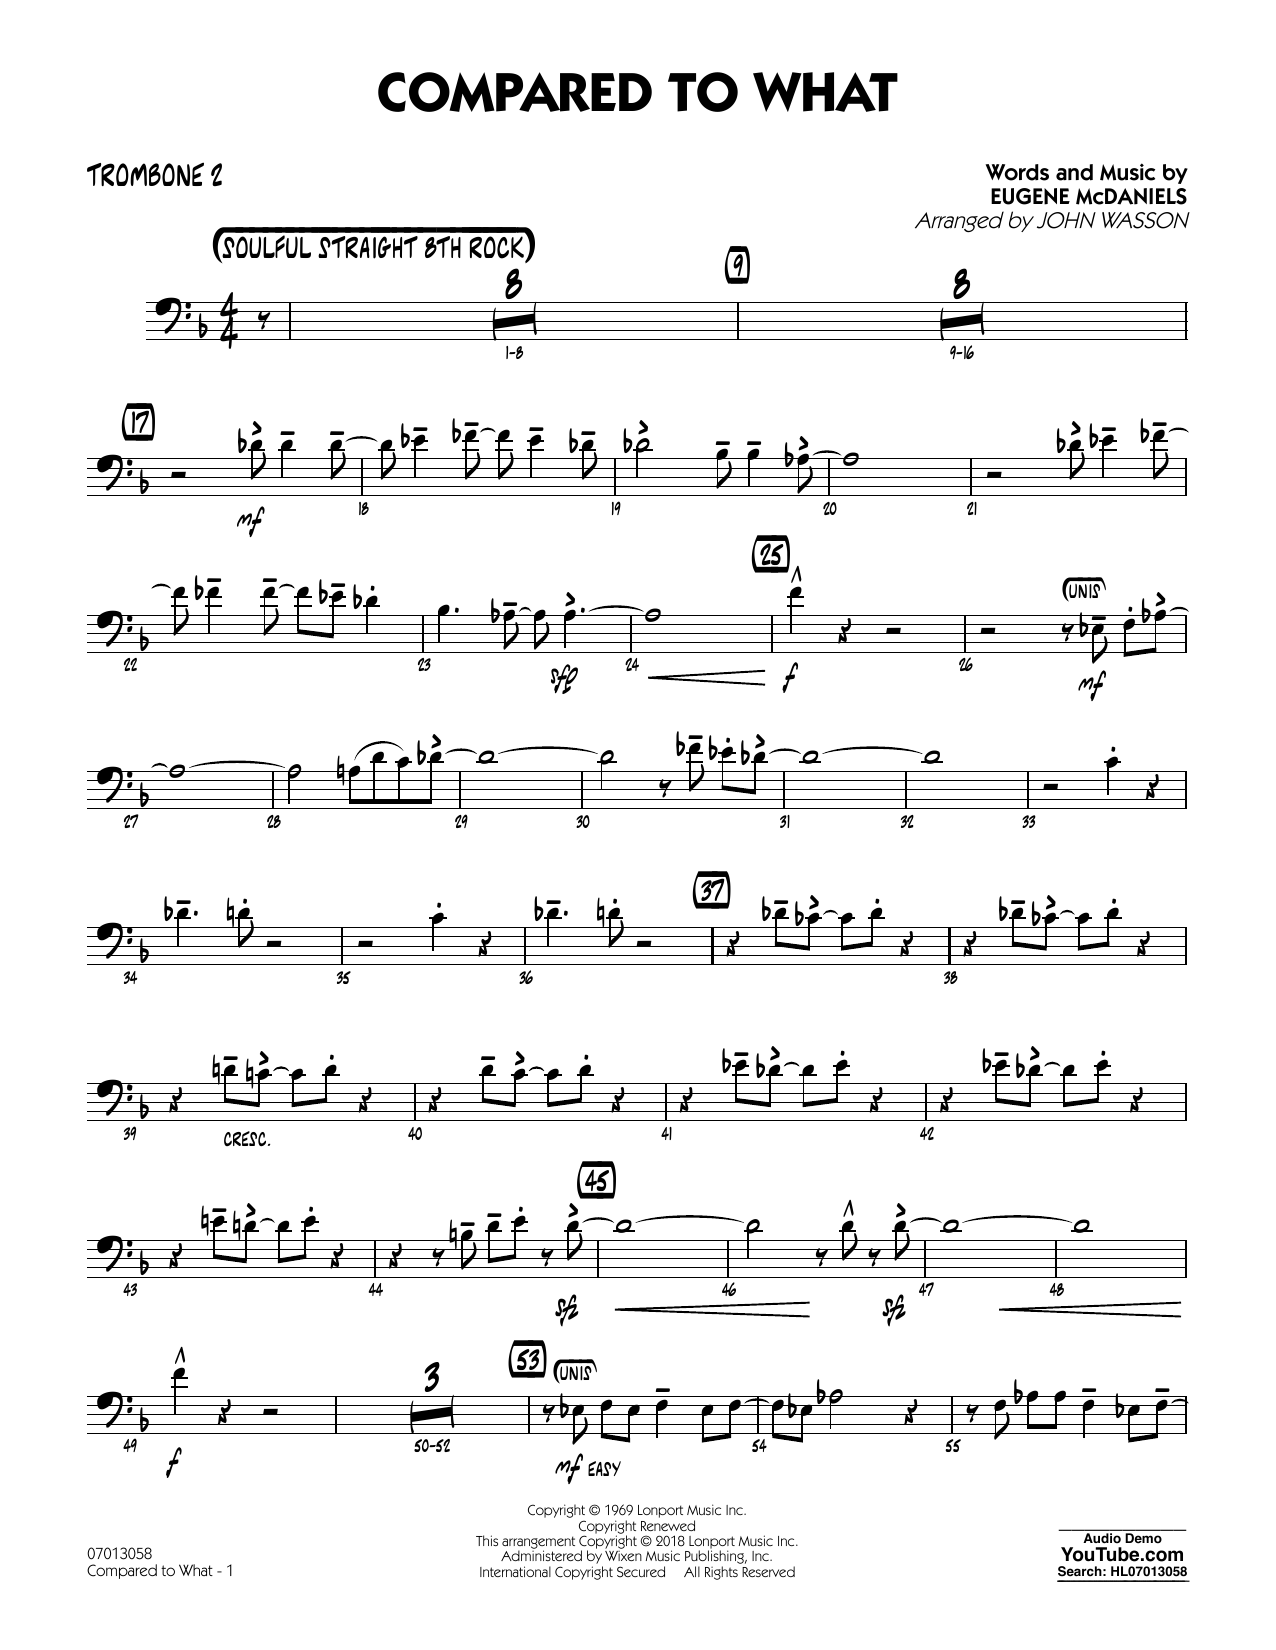 John Wasson Compared To What - Trombone 2 sheet music notes and chords. Download Printable PDF.